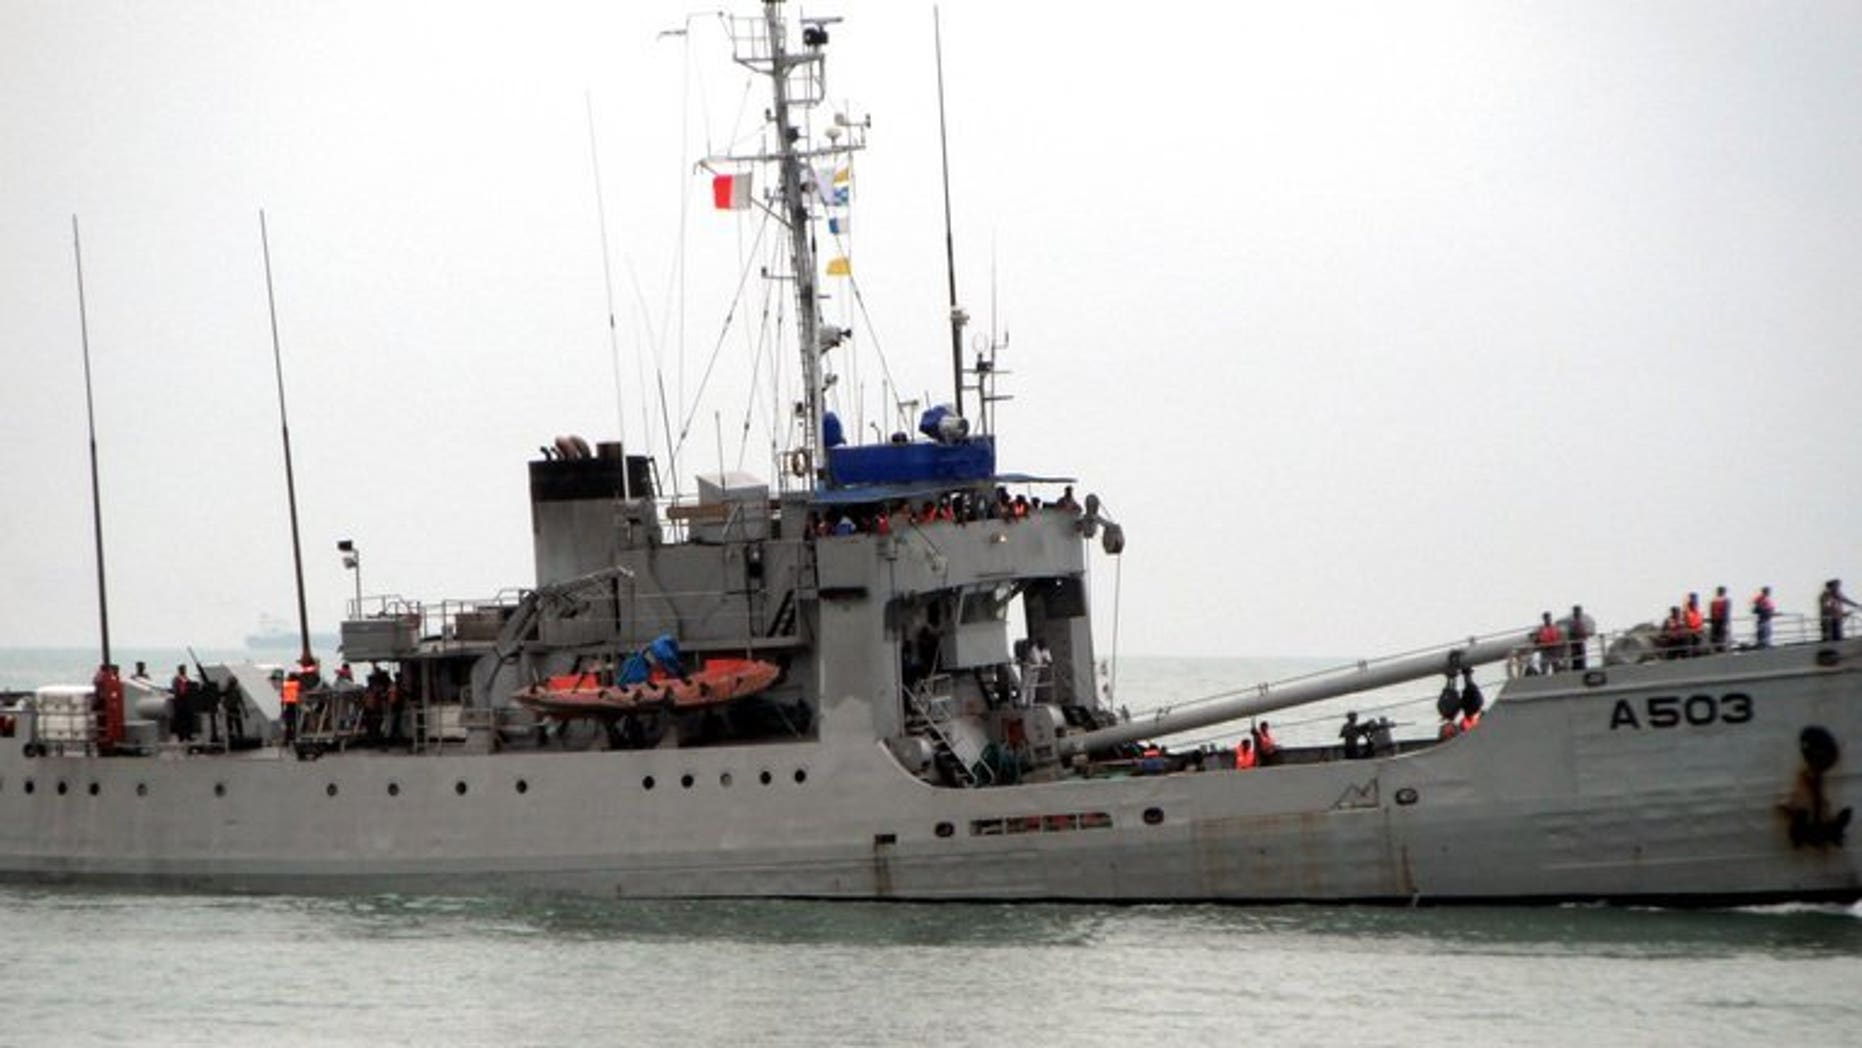 A Nigerian navy ship, one of three taking part in a joint counter-piracy patrol by the Nigerian and Benin navies, patrols the sea off the coast of Benin's capital Cotonou on September 28, 2011. The number of attacks by pirates worldwide has fallen in the last year but armed robbery and kidnappings at sea have surged off the coast of west Africa, a maritime body said on Monday.